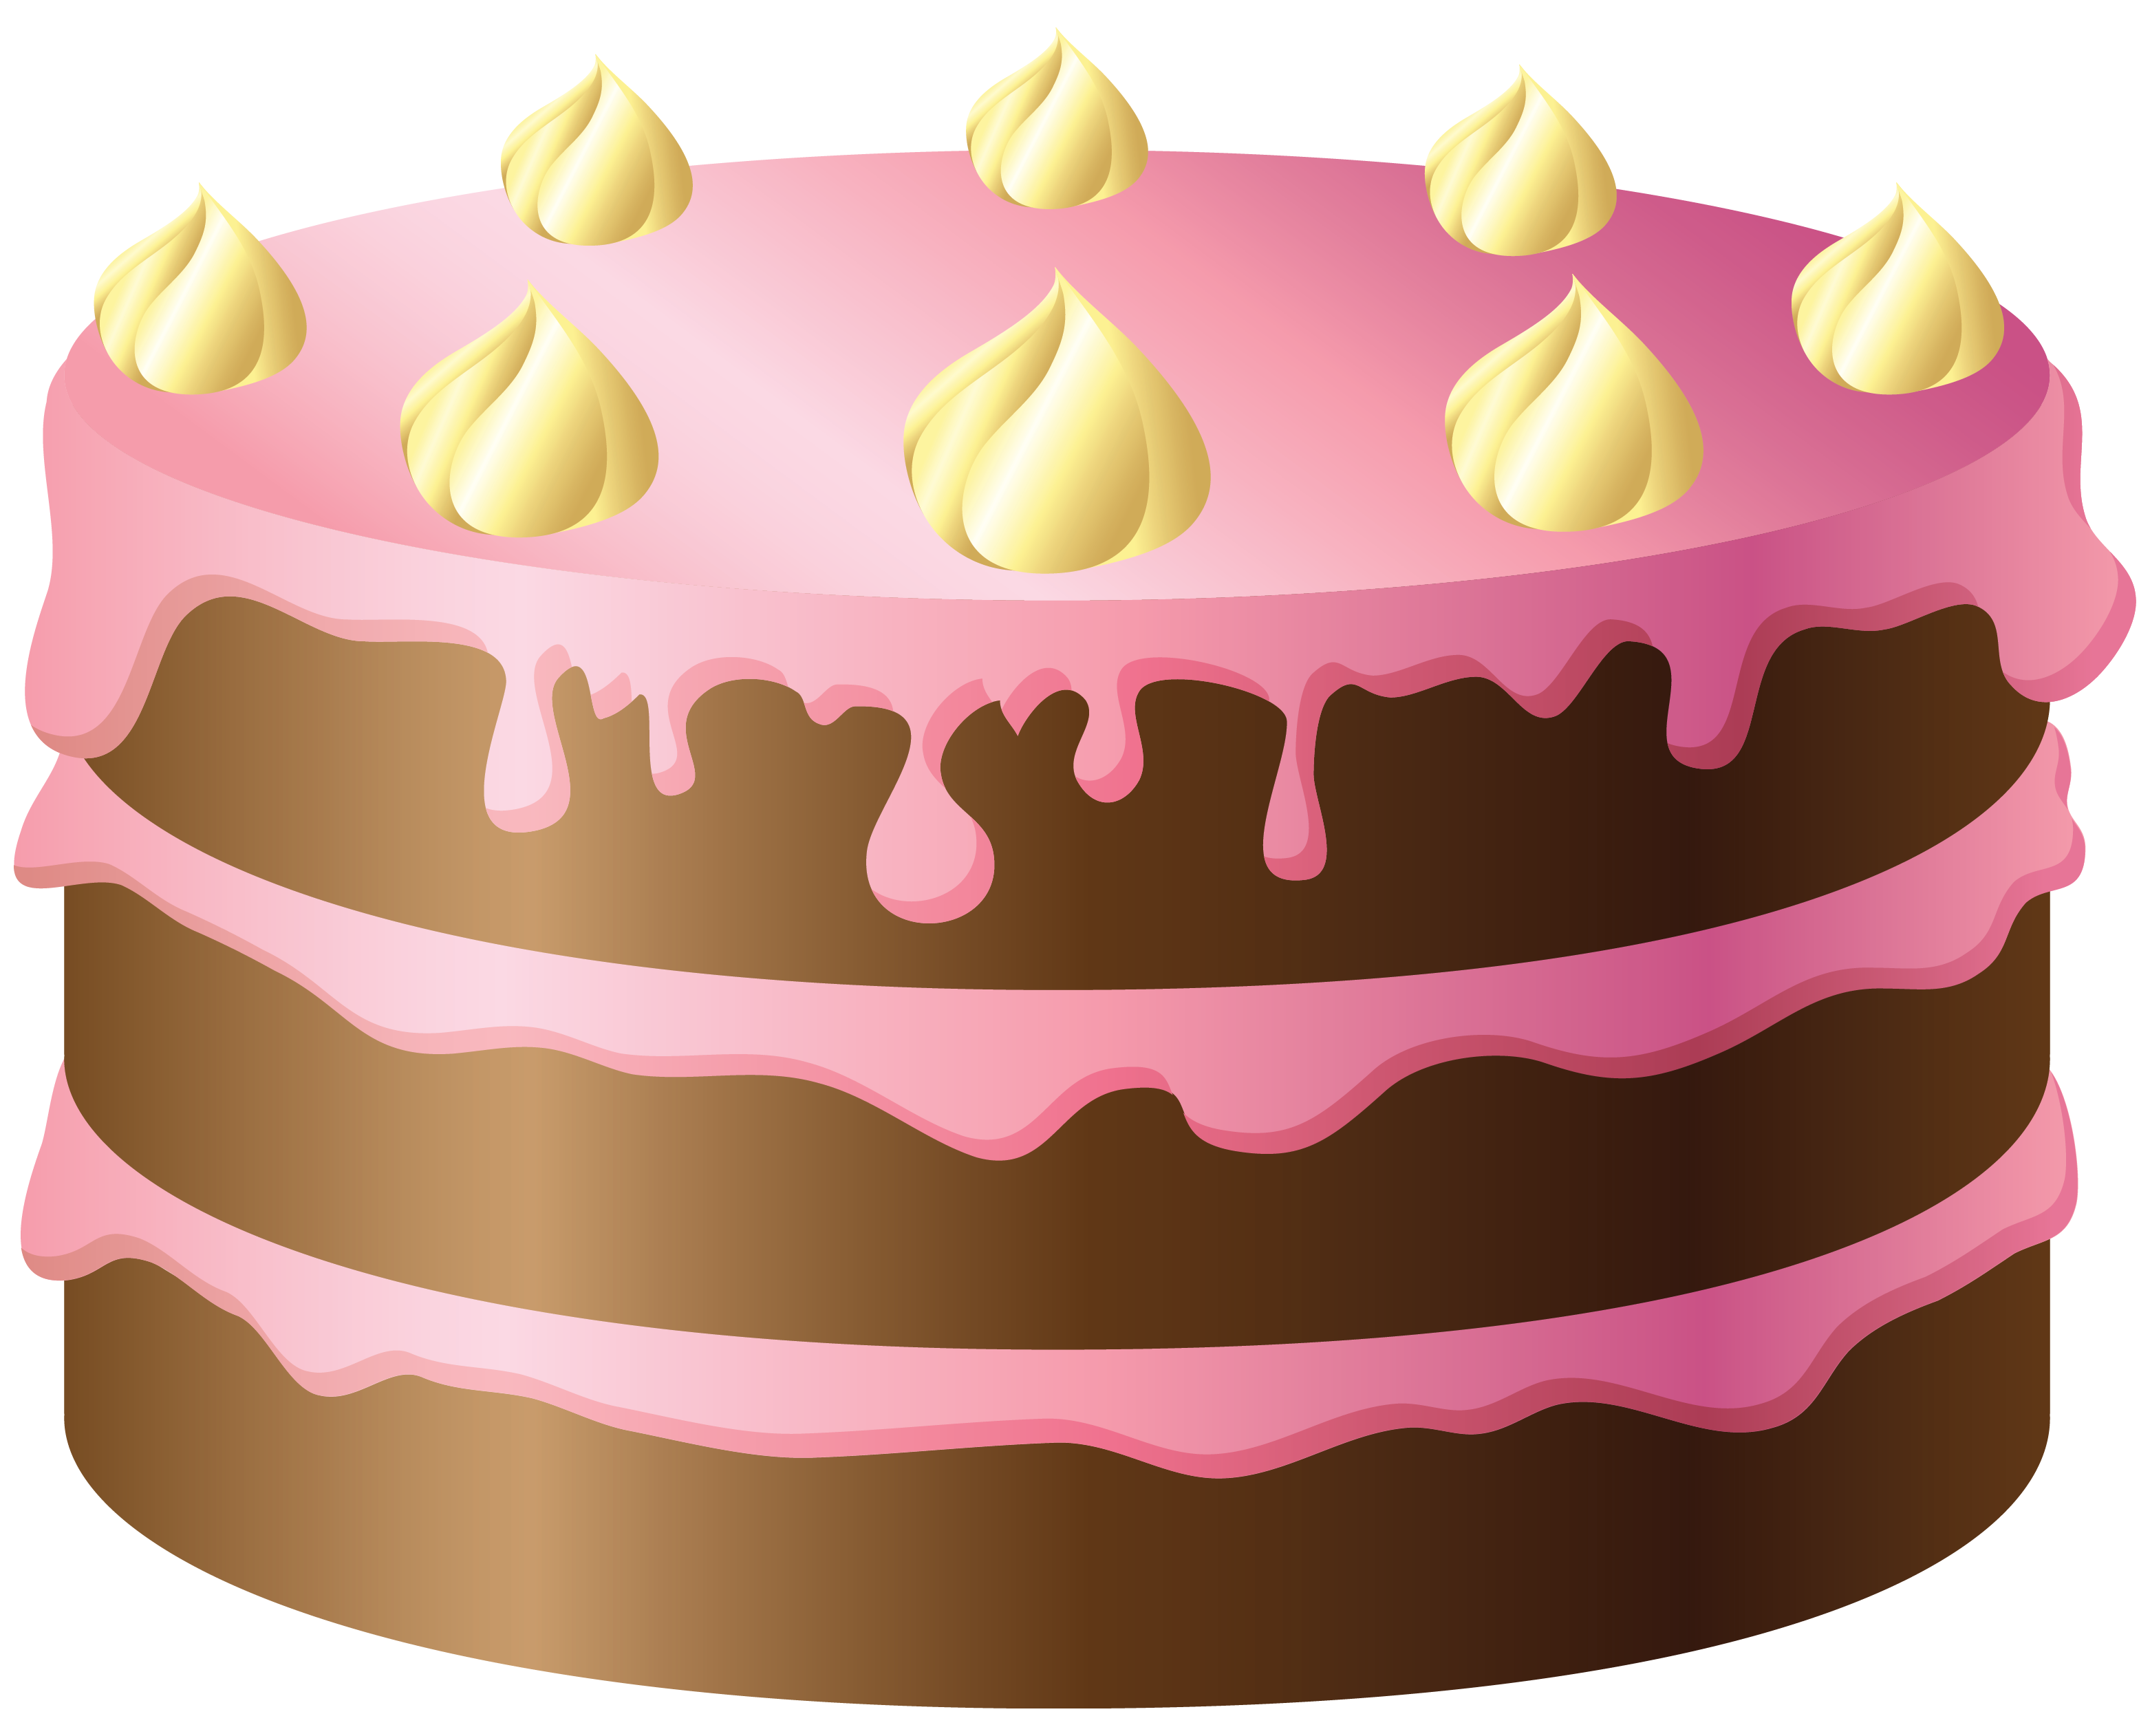 Chocolate cake with pink. Dishes clipart agar clipart